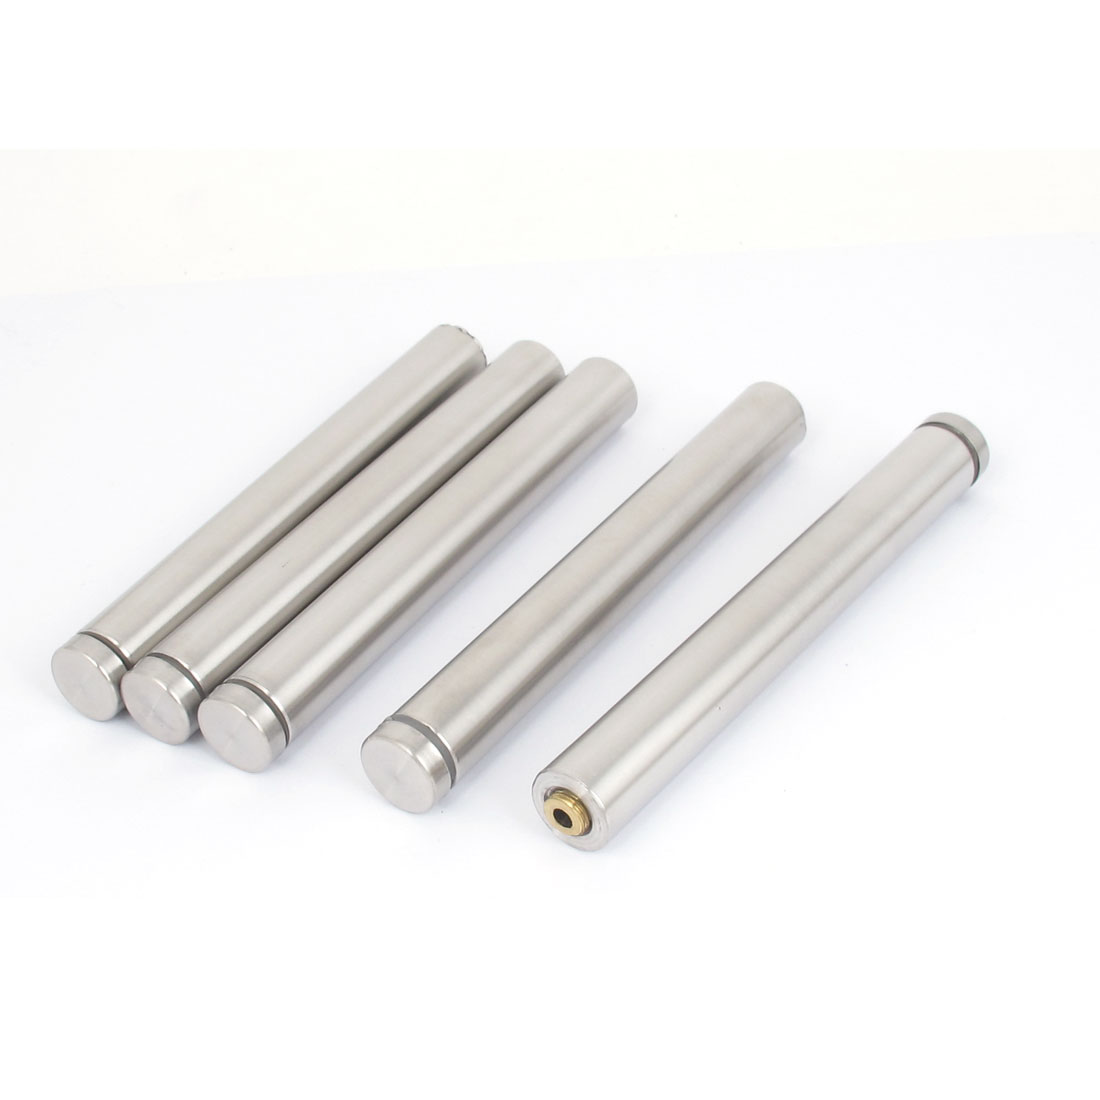 19mmx150mm Stainless Steel Advertisement Nail Glass Wall Connector Standoff 5Pcs